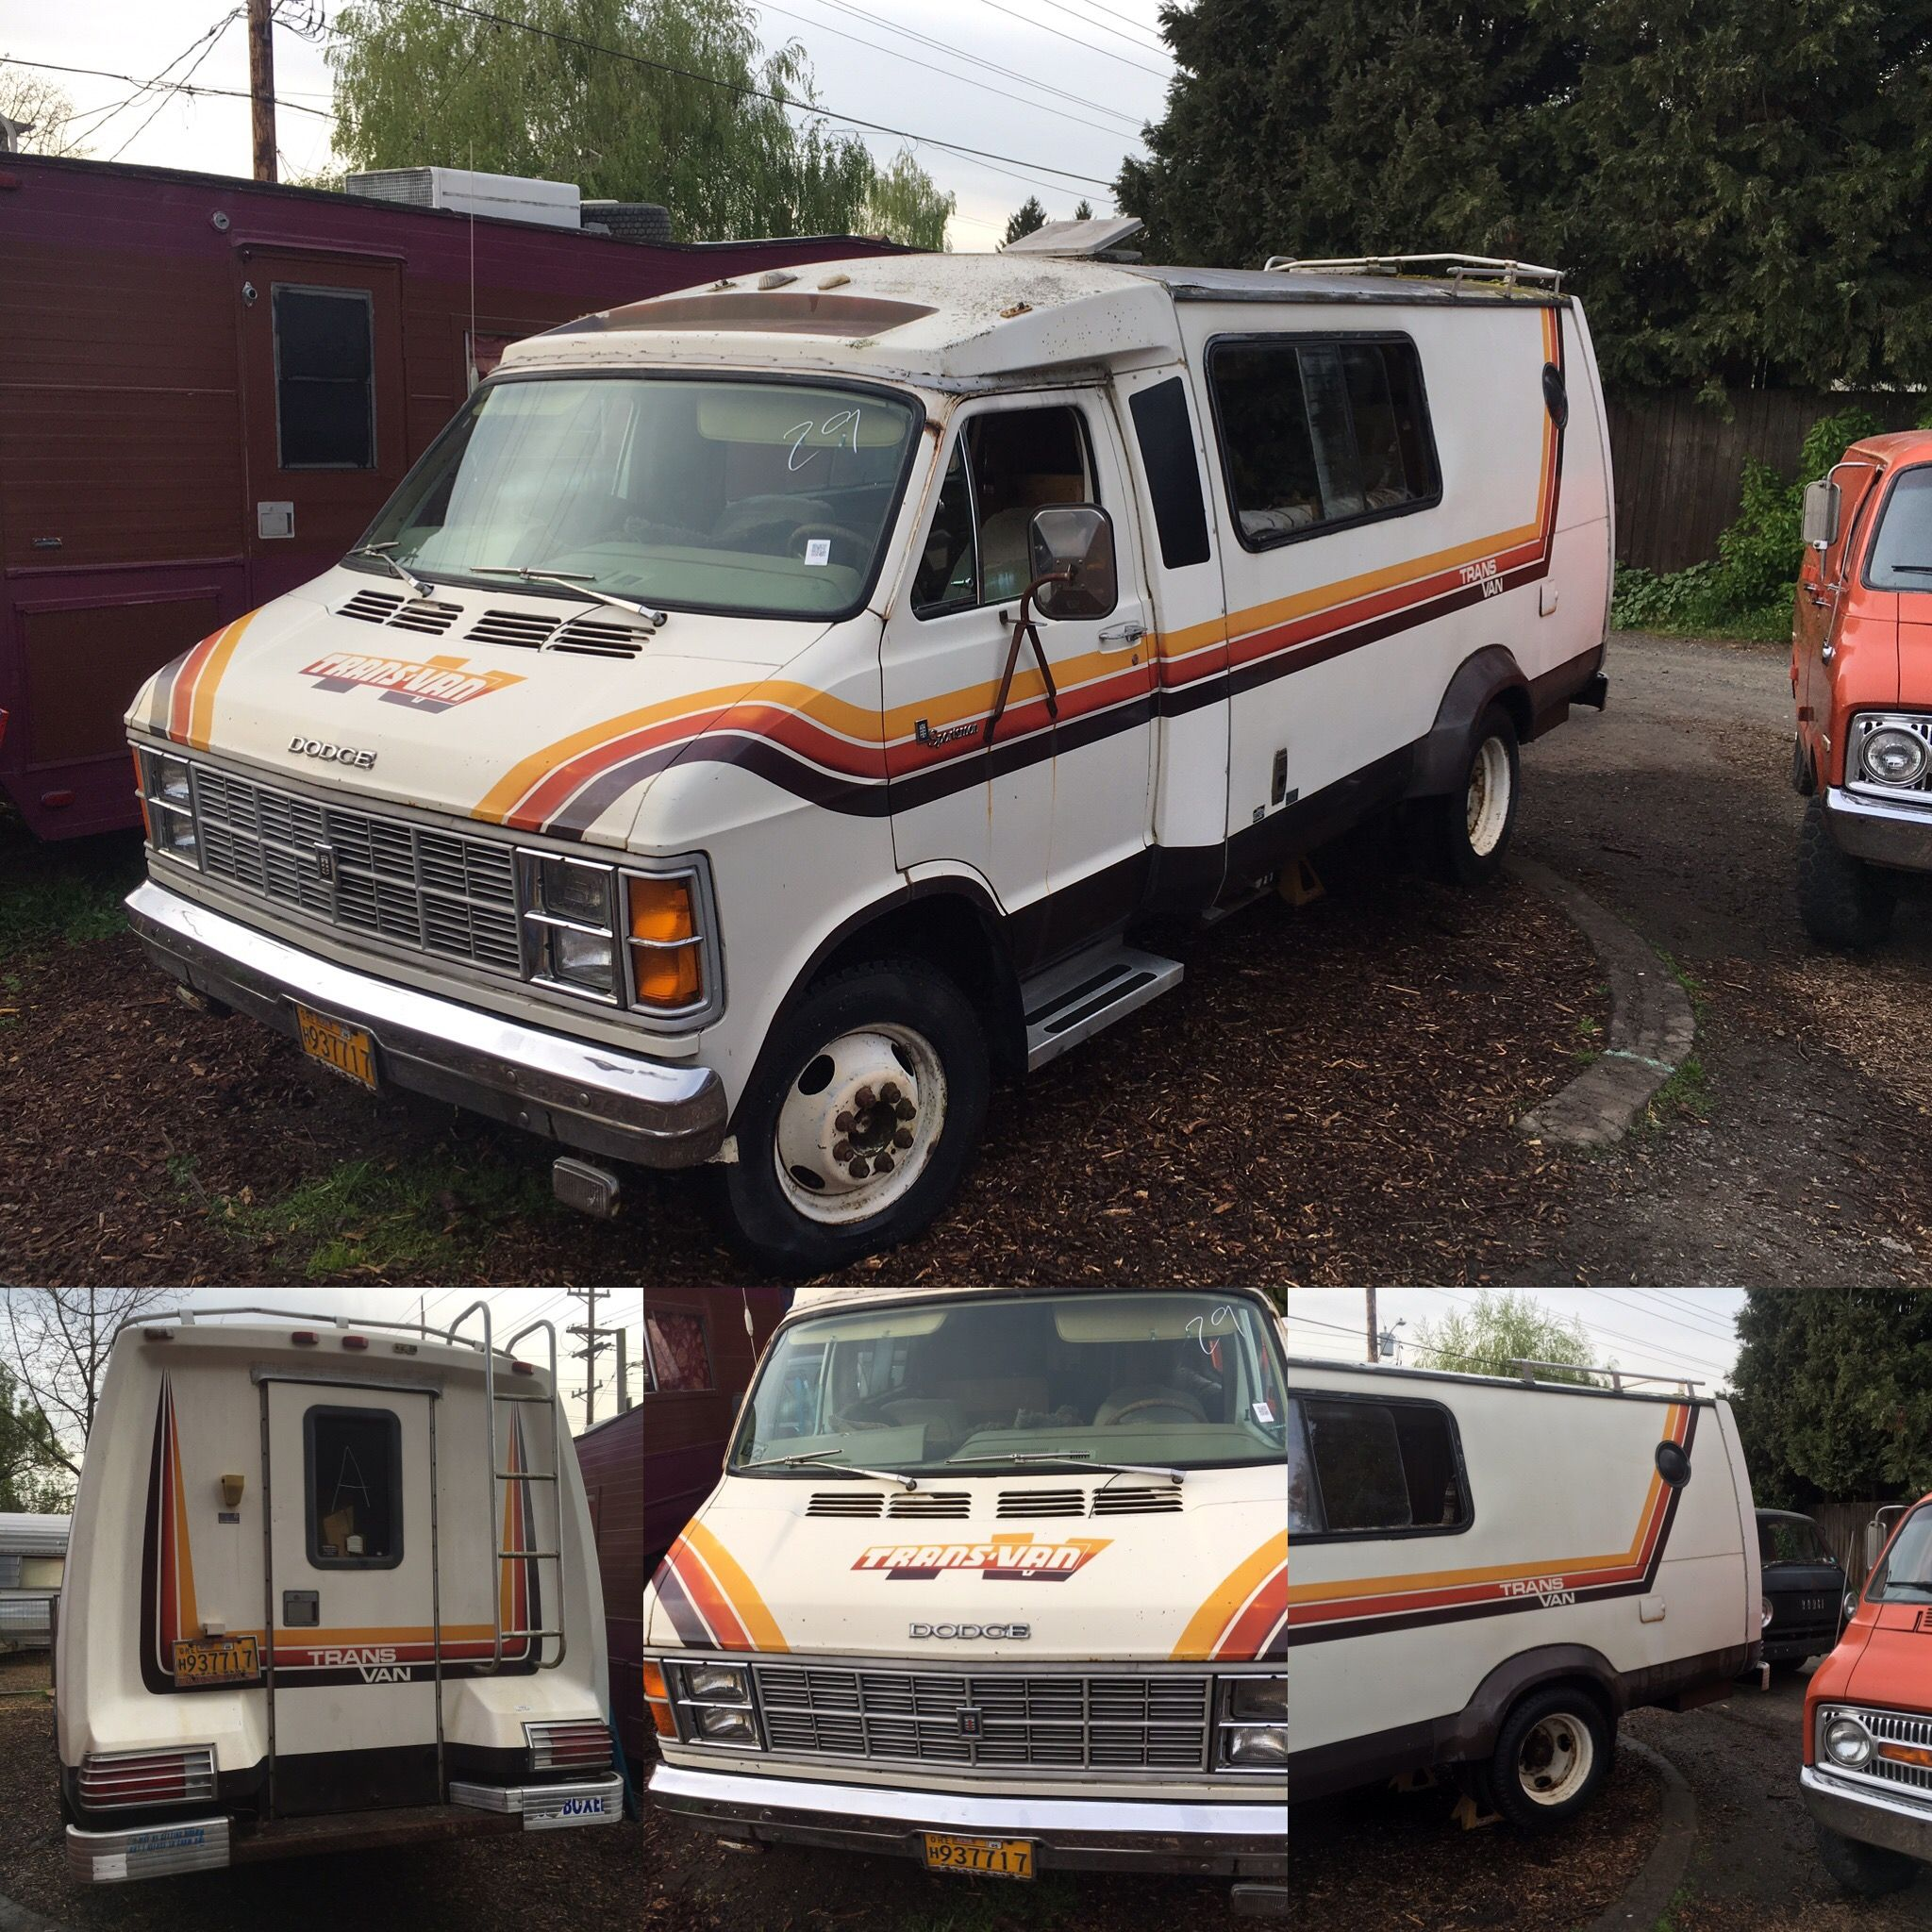 FOR SALE 1979 Dodge Transvan $3500